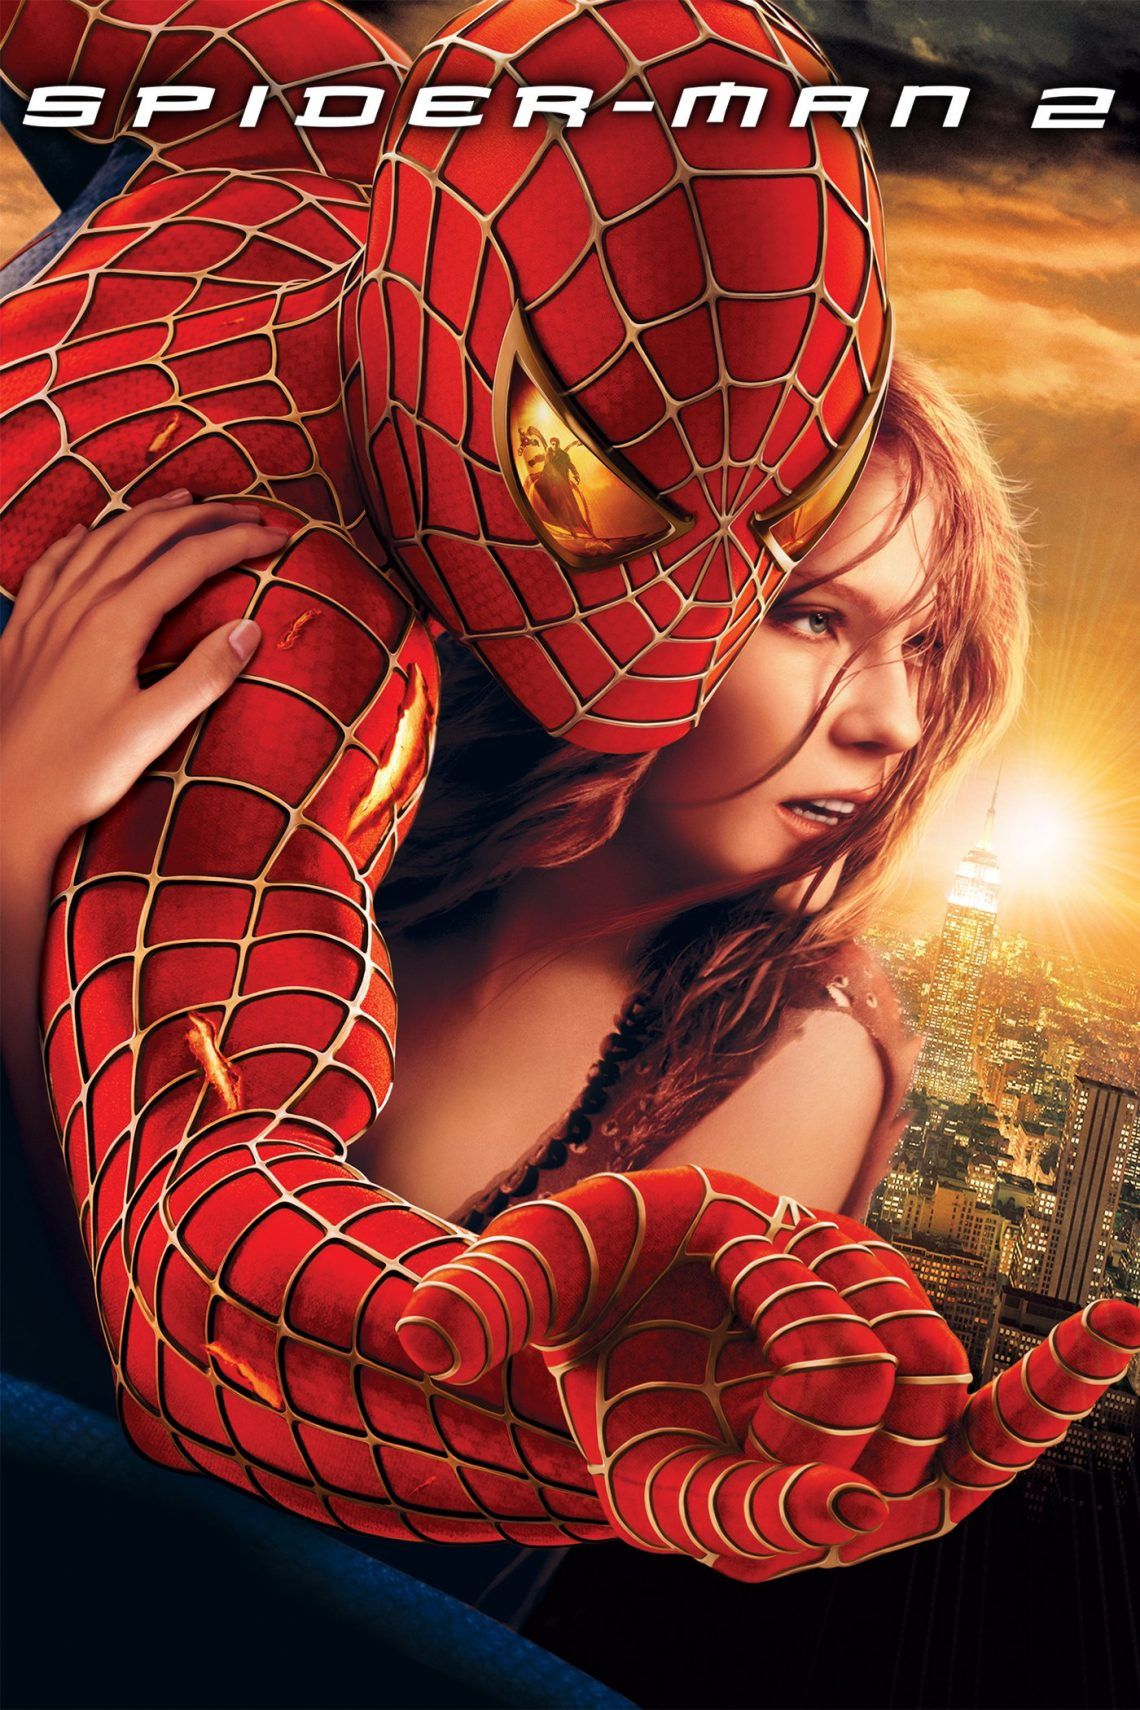 Spiderman 2 [Review] - Cine y Televisión